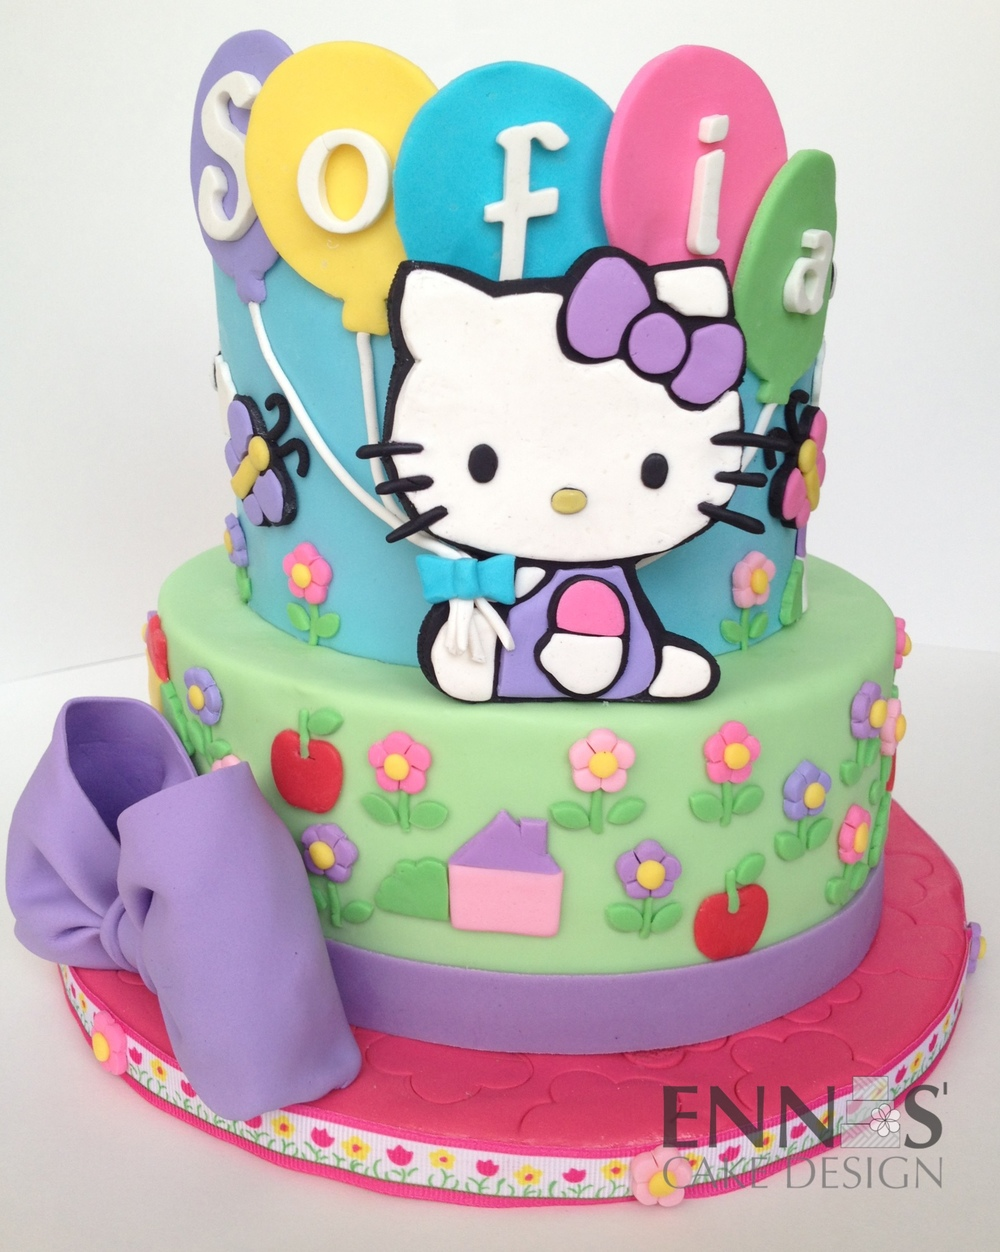 Children Cakes Ennas Cake Design